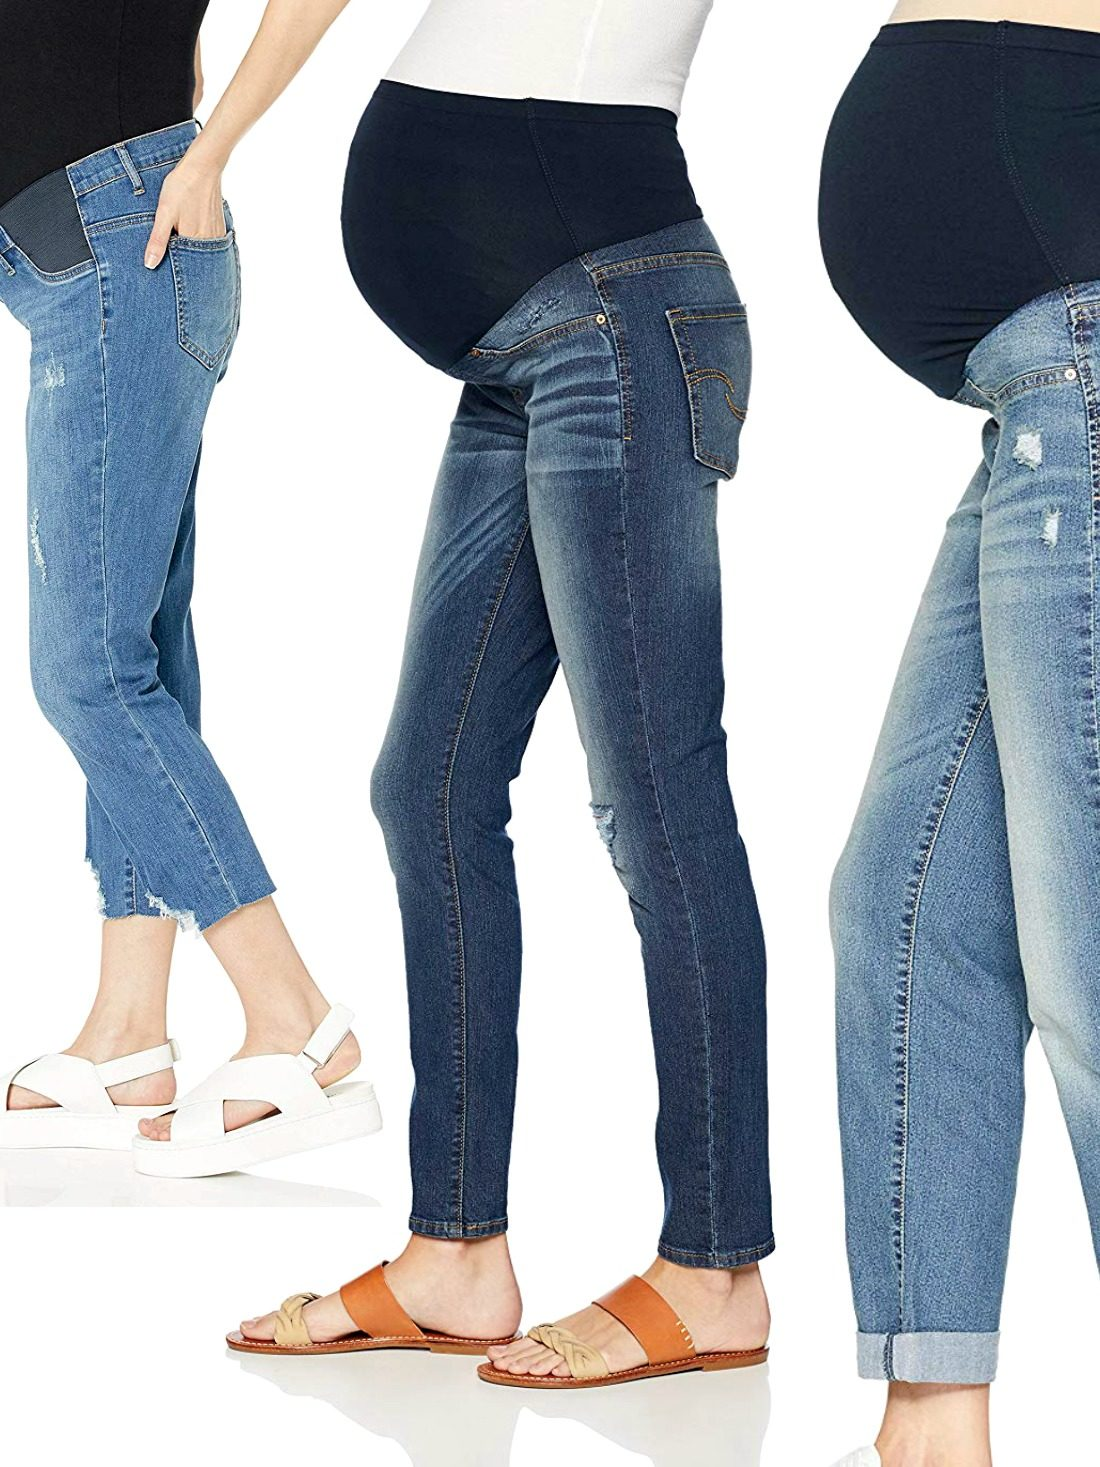 Wondering how to fill the gap between comfort and style and make motherhood fashionable? Find out how with our list of the best maternity jeans. Dive in and add them to cart!